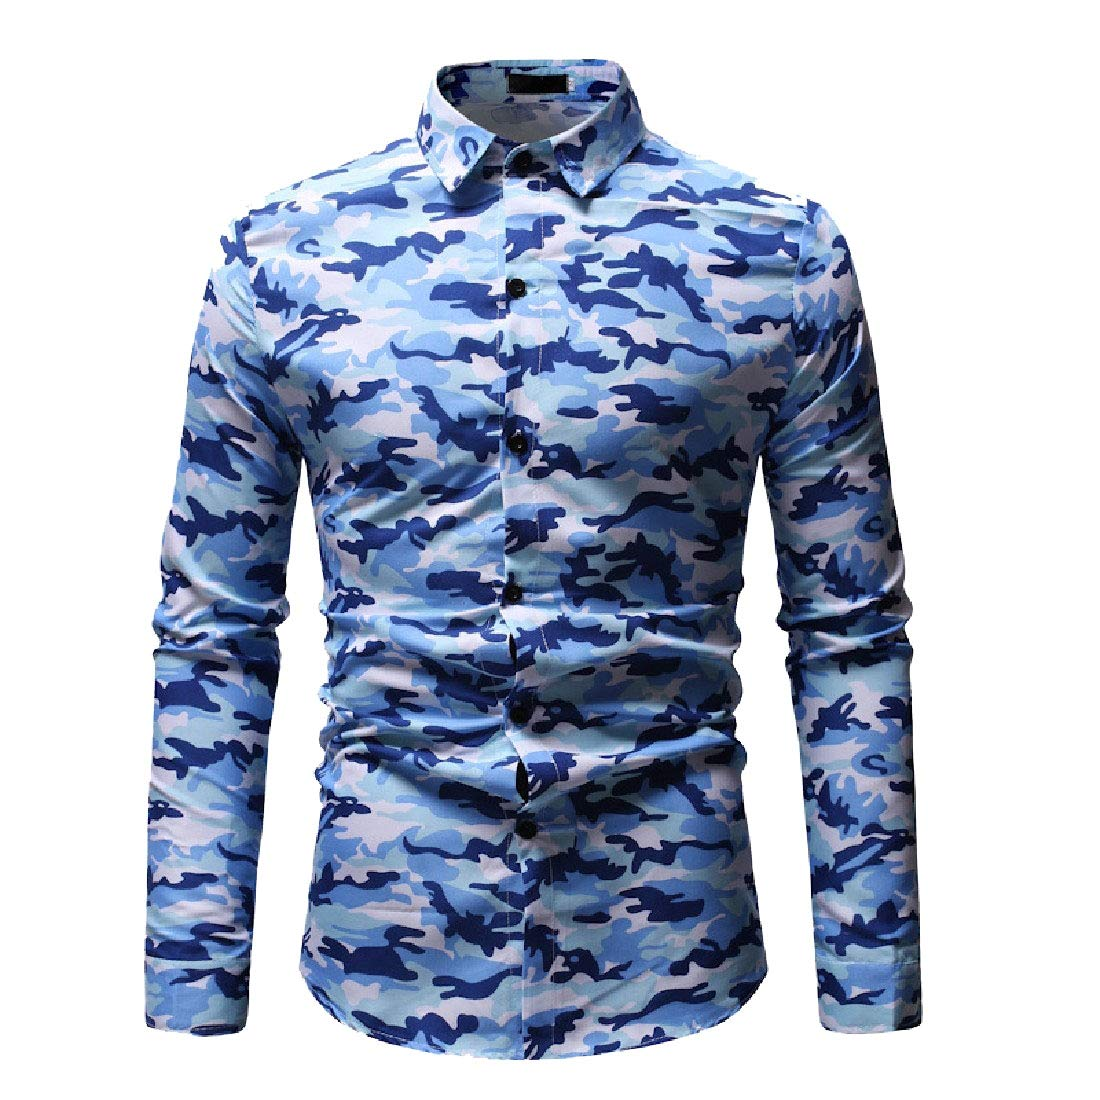 Nicelly Mens Long Sleeve Printed Lapel Button-Down Leisure T-Shirts Shirts